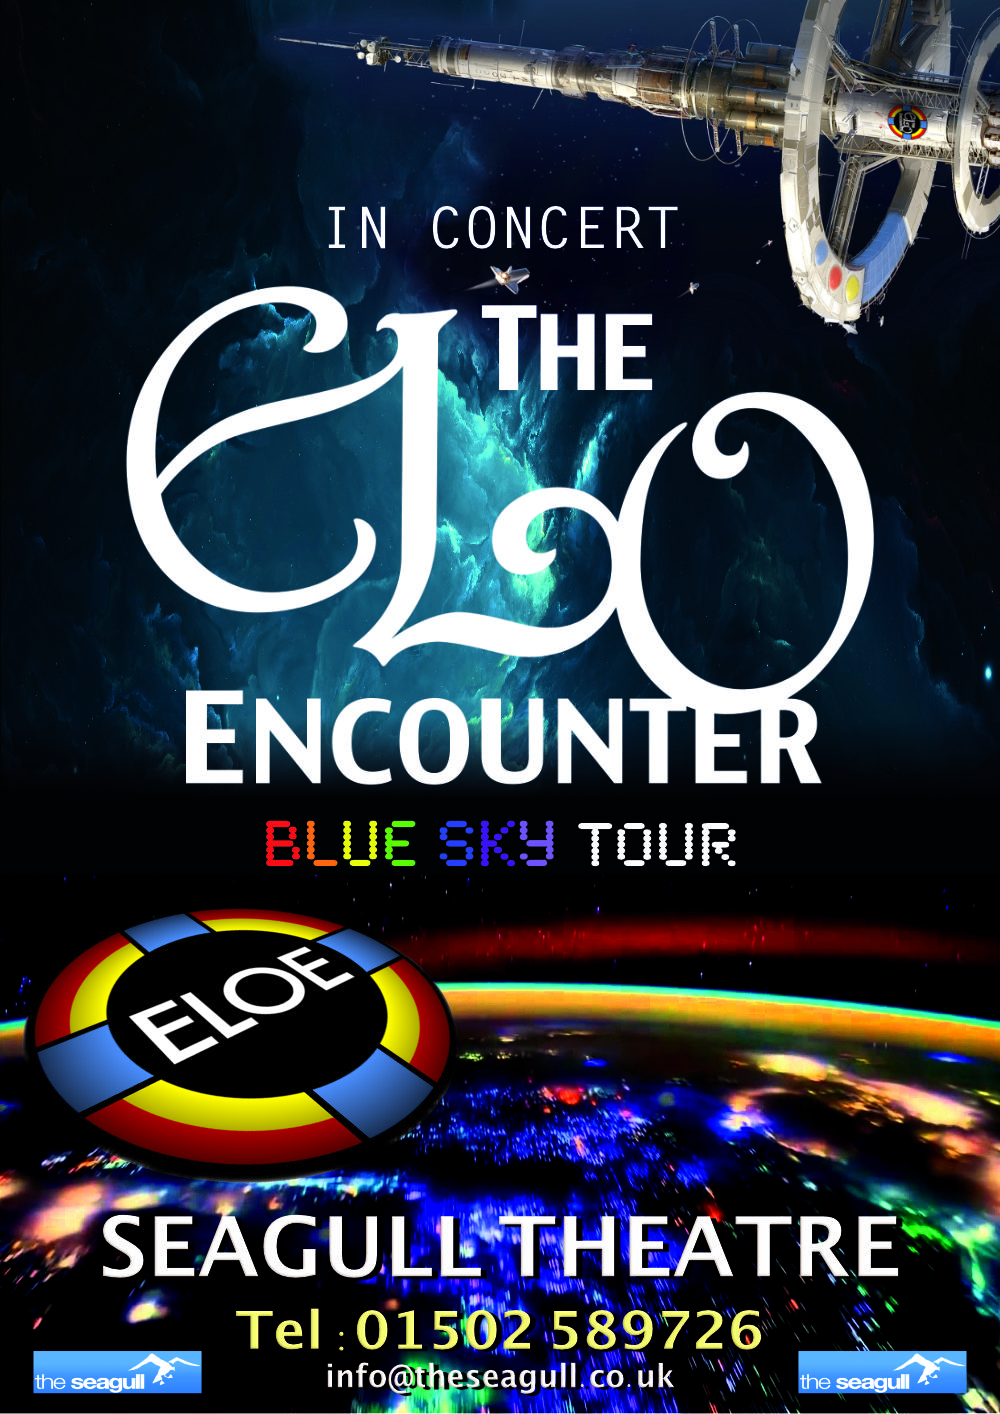 Seagull Theatre Lowestoft - ELO Encounter Tribute Poster